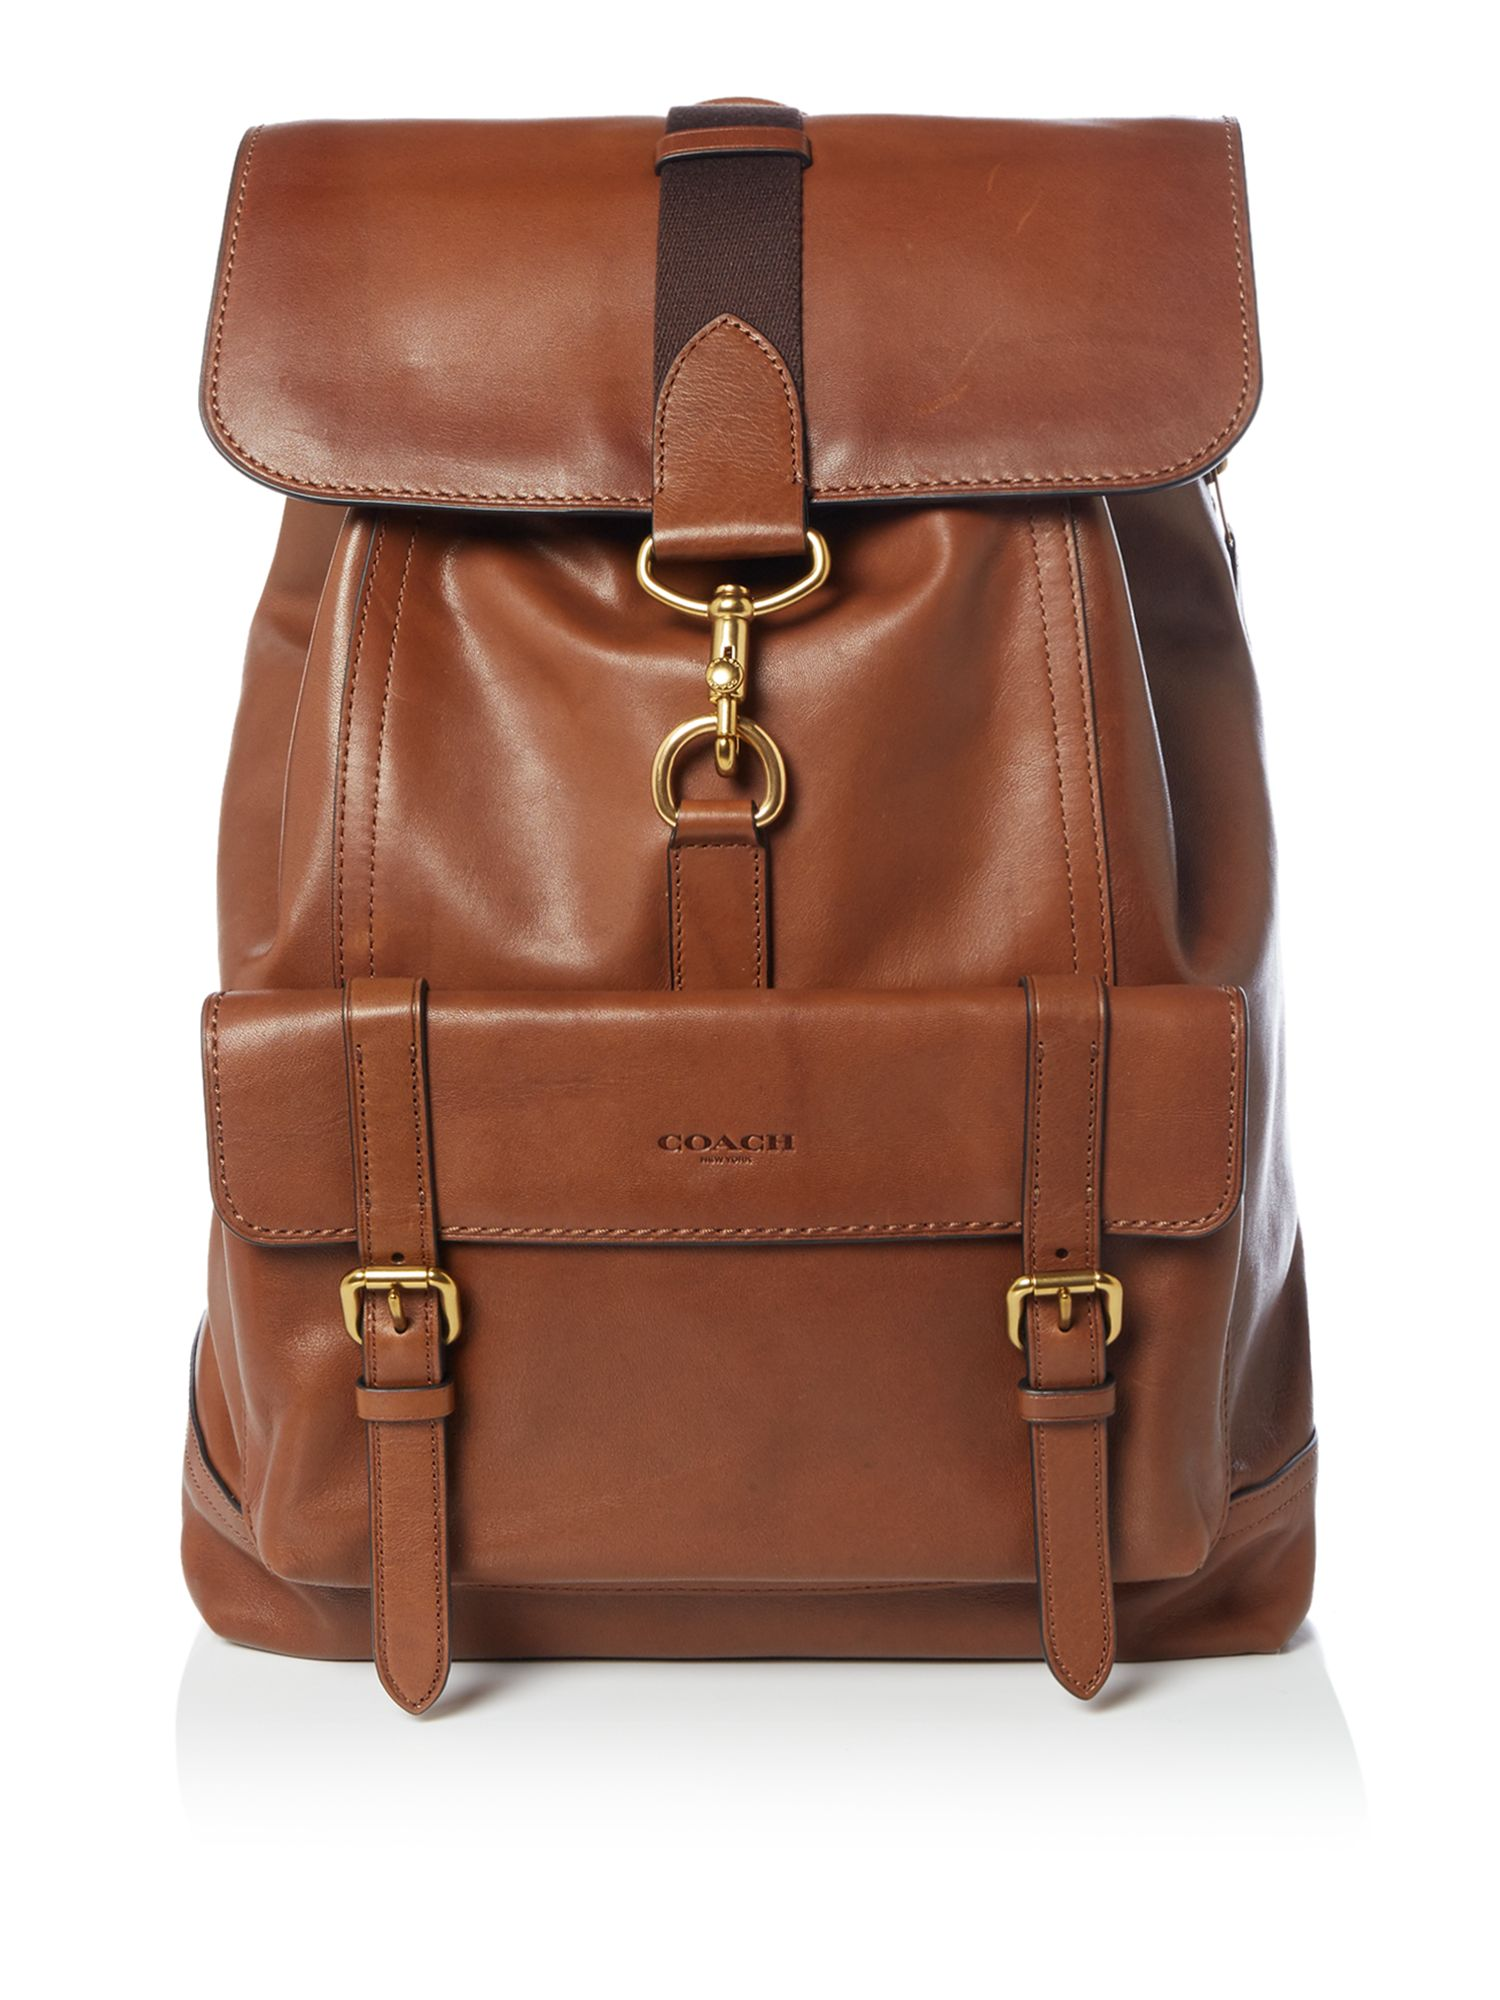 Coach Bleecker Backpack, Brown